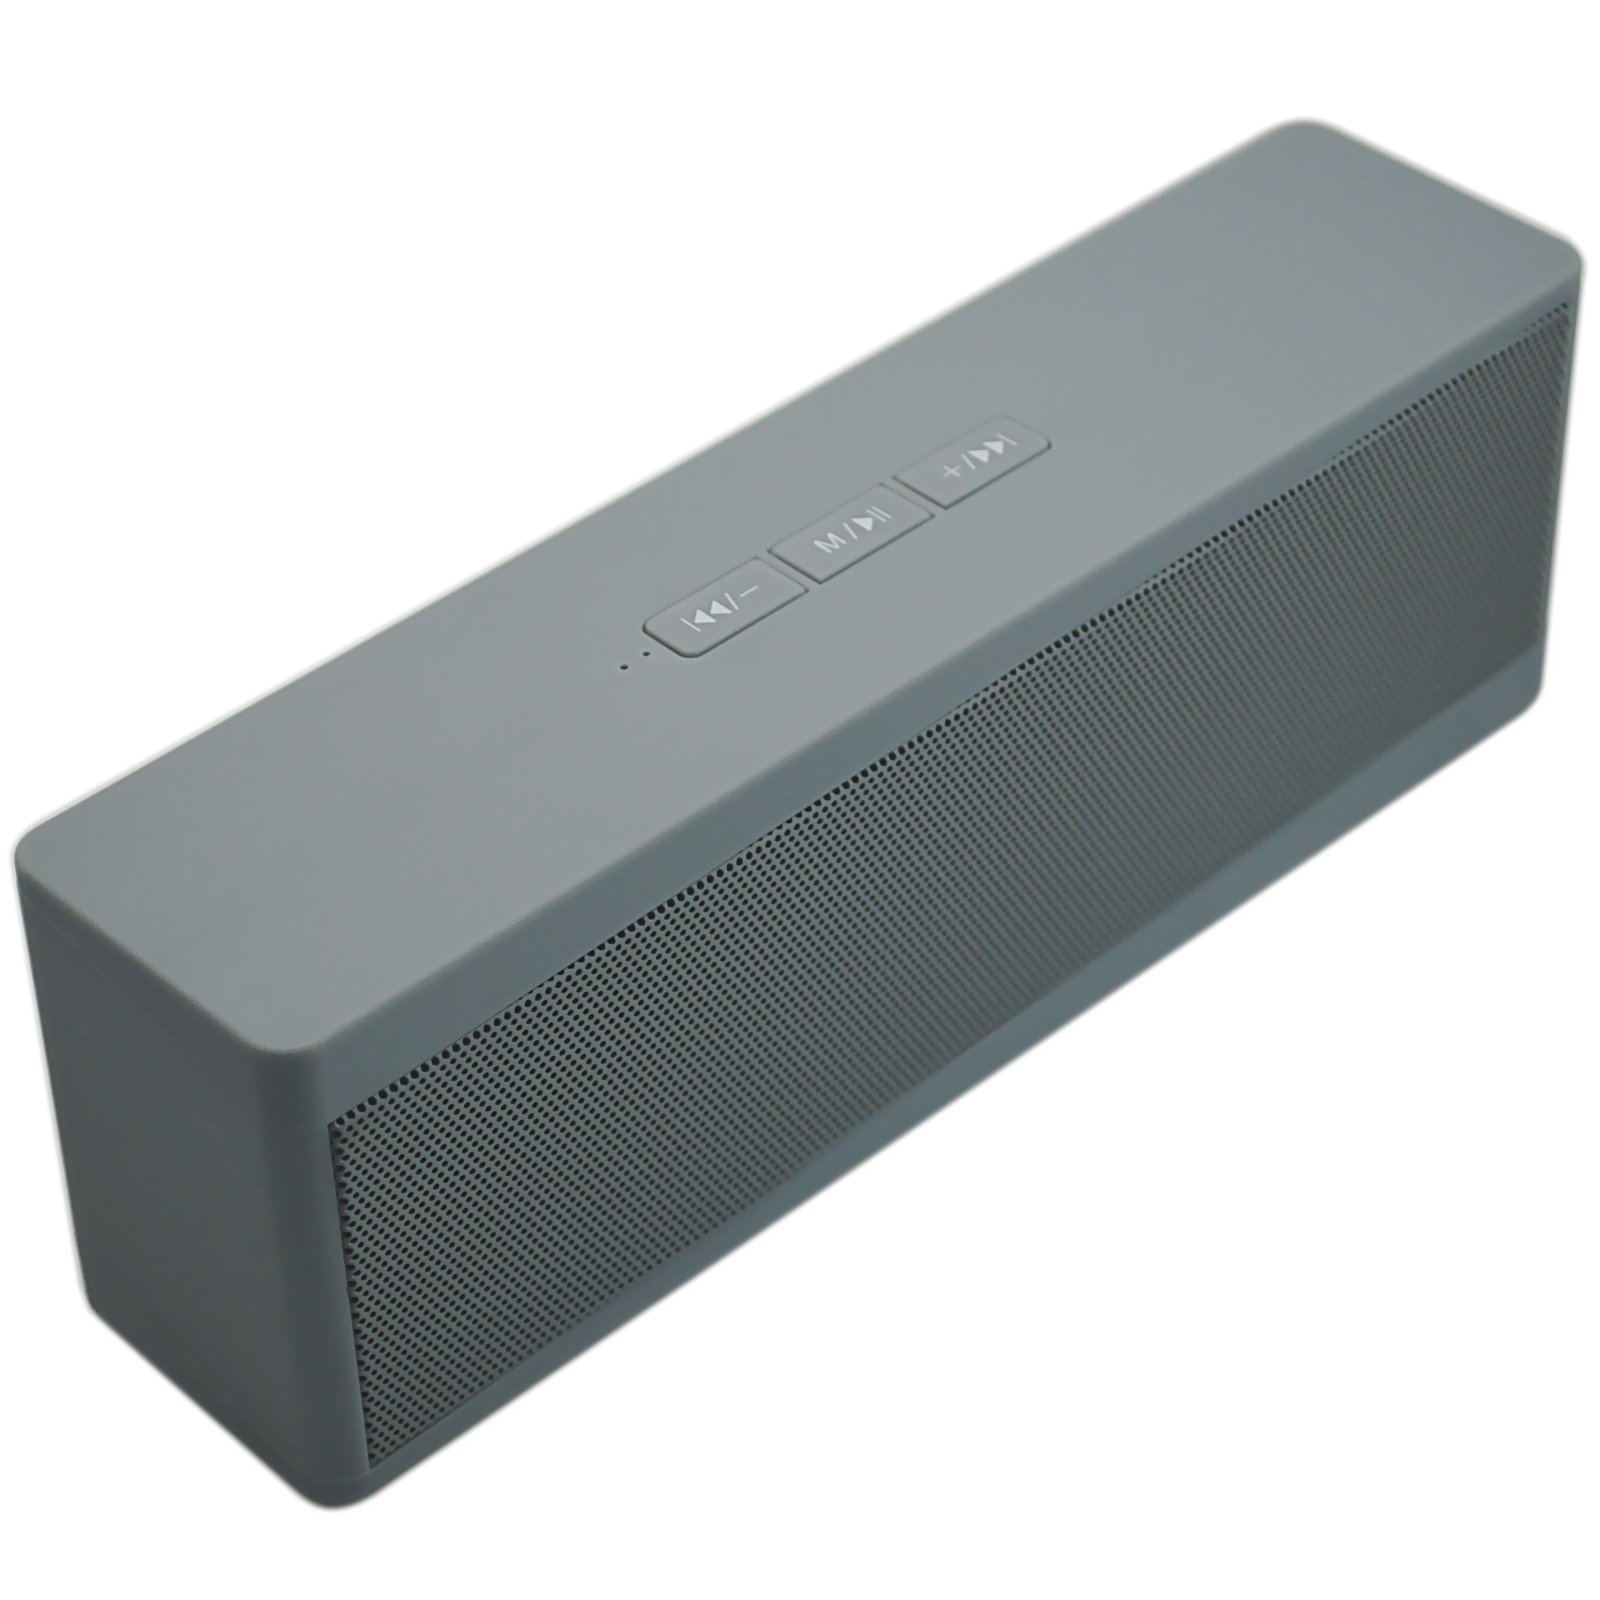 Wireless Bluetooth Speaker Portable with Mic Handsfree Calling Support MicroSD TF Card U Disk MP3 Playback for Mobile Phone PC Tablet (Grey)